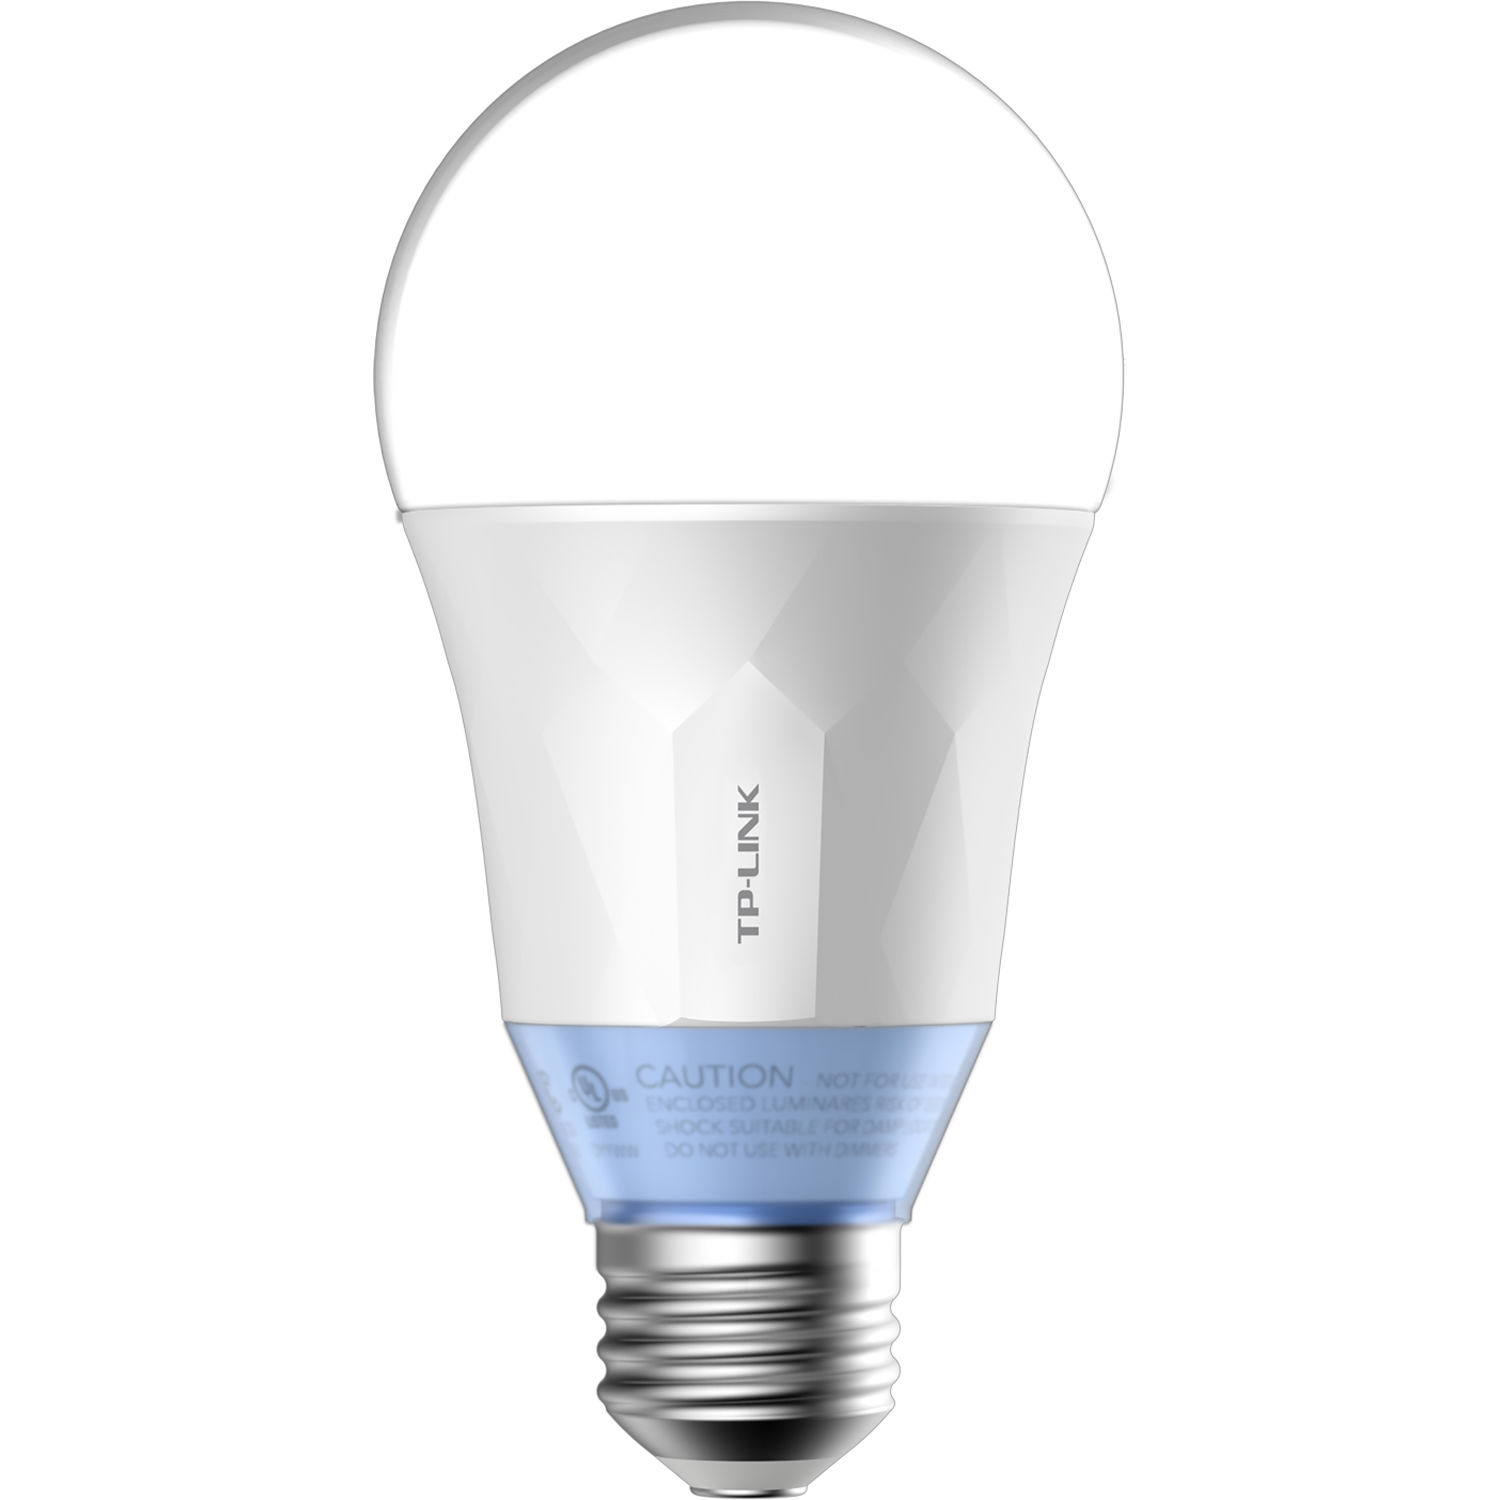 Tp link lb120 wi fi smart led bulb with tunable white light Smart light bulbs